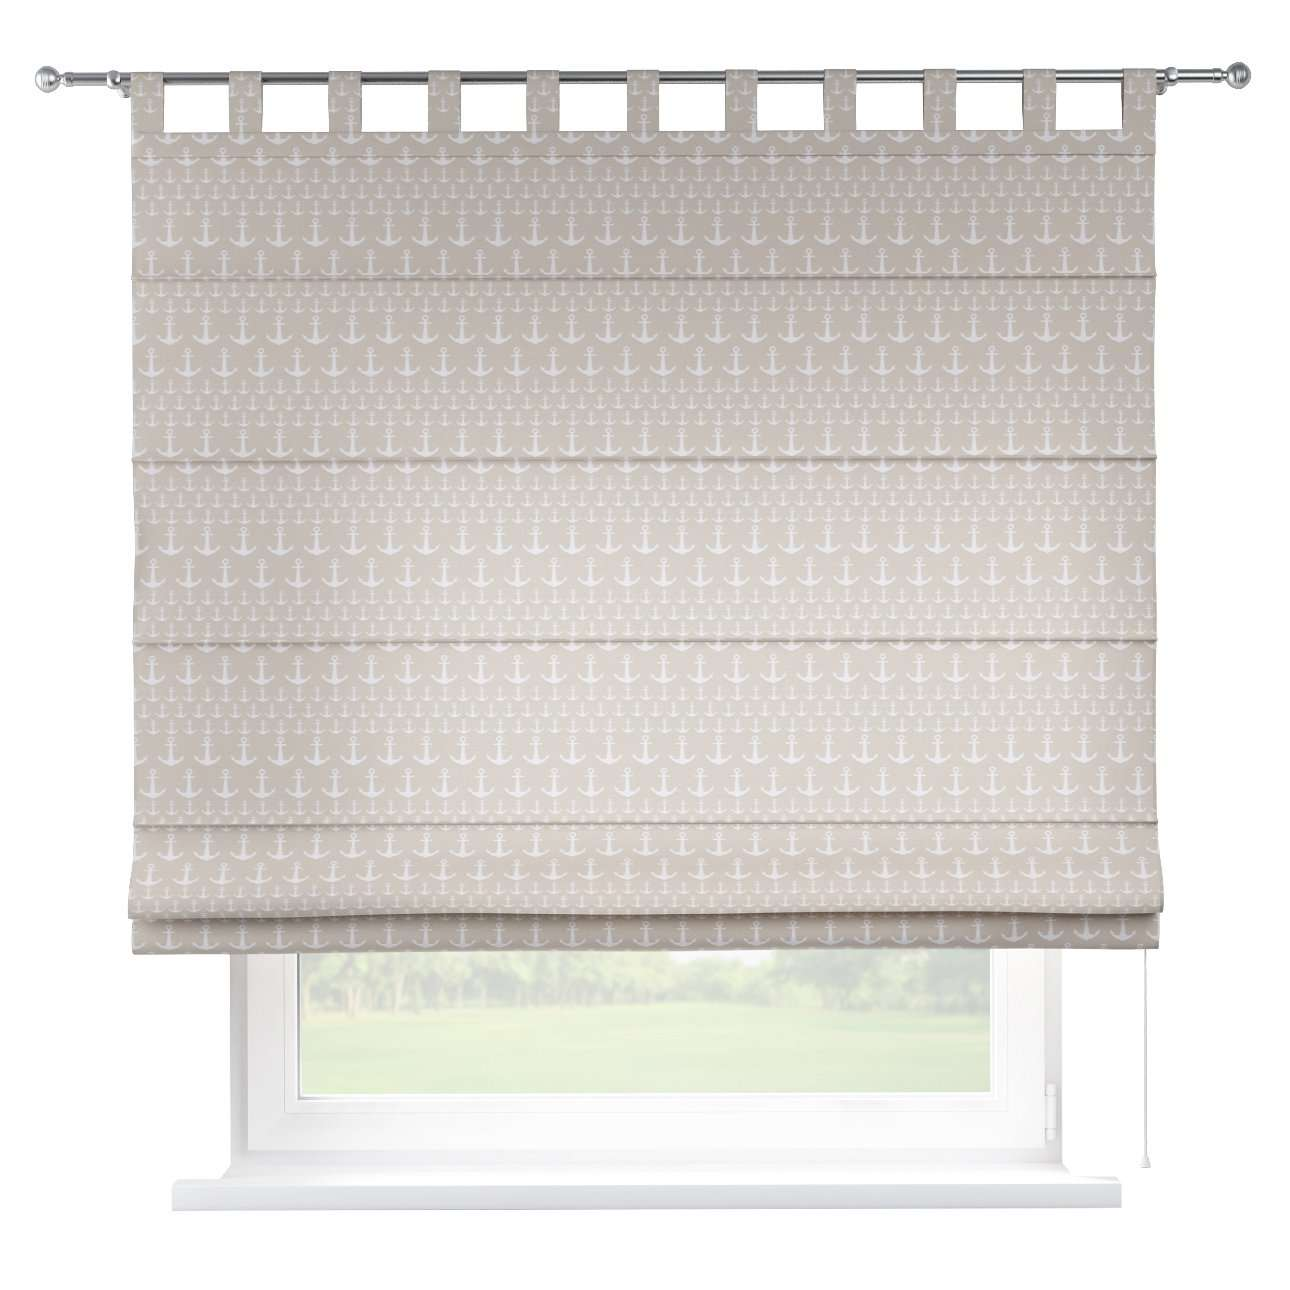 Verona tab top roman blind 80 x 170 cm (31.5 x 67 inch) in collection Marina, fabric: 140-63